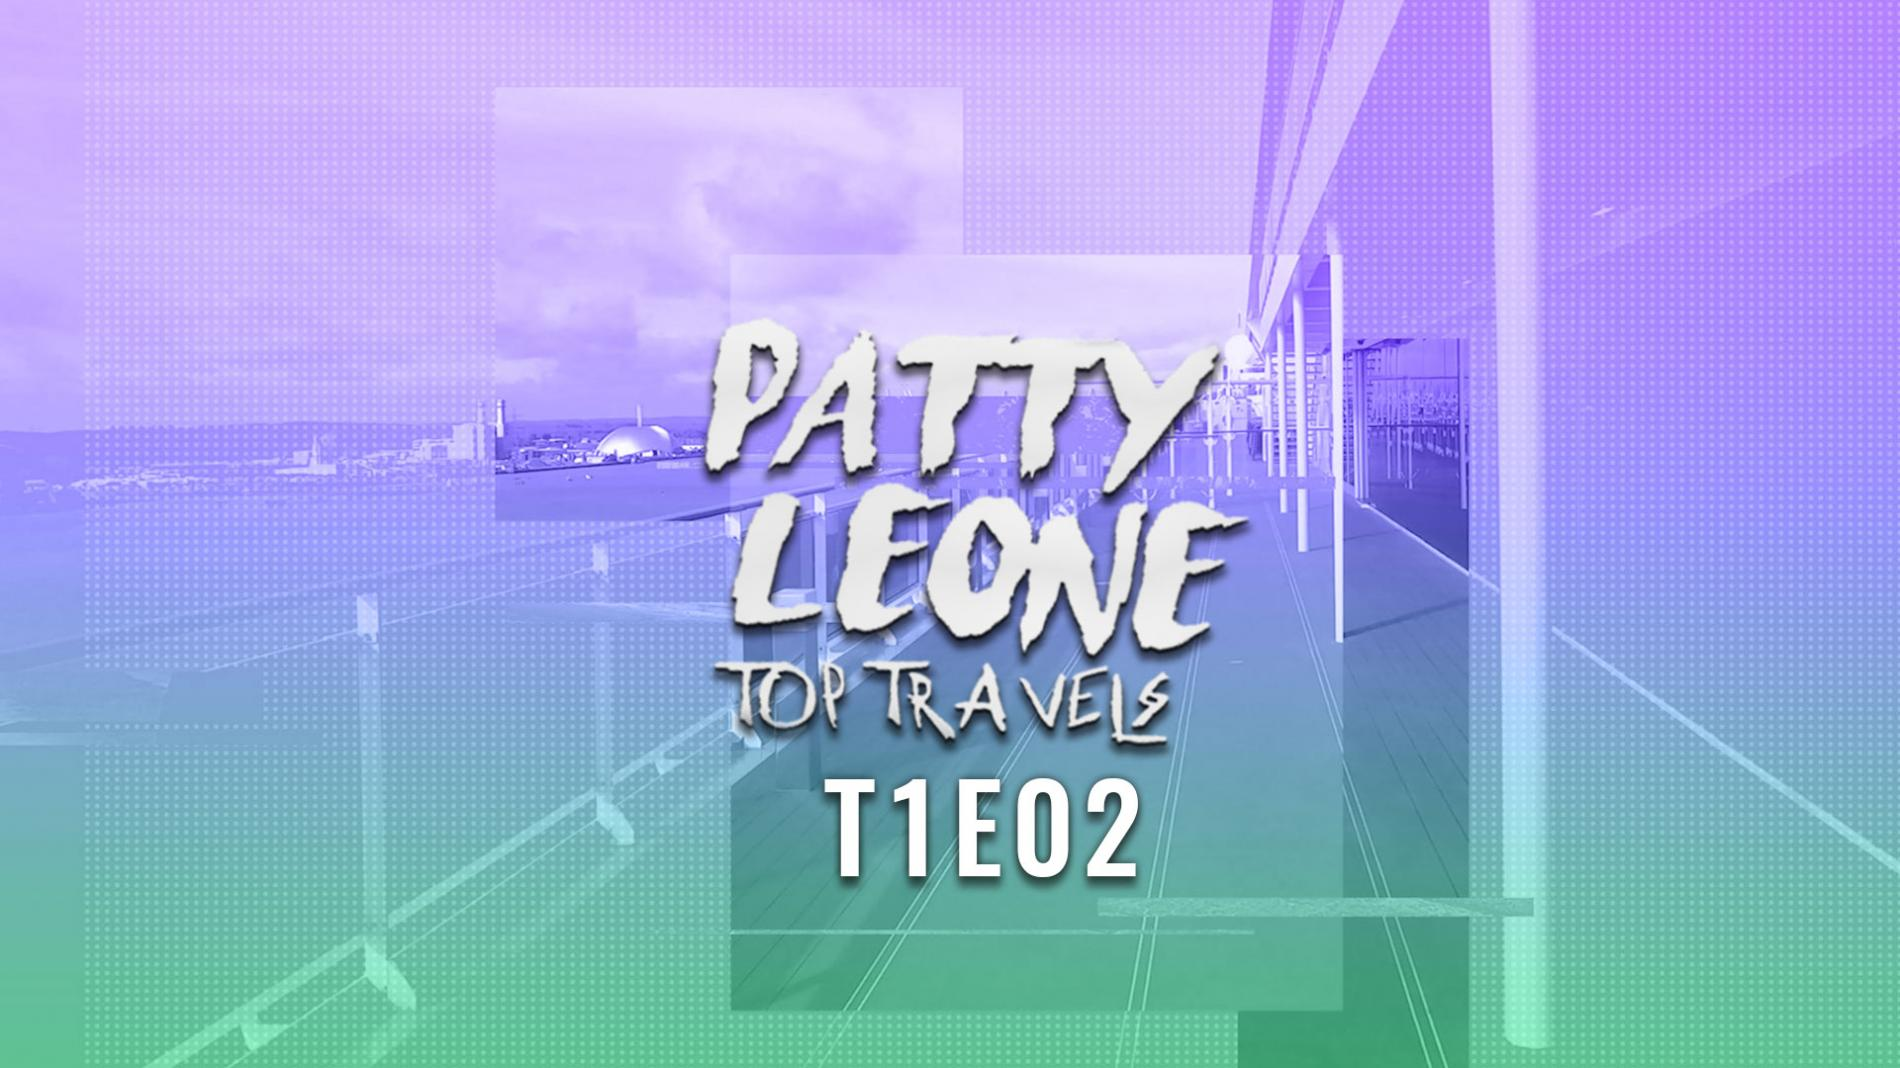 Patty Leone Top Travels - Temporada T01 - Episódio E02